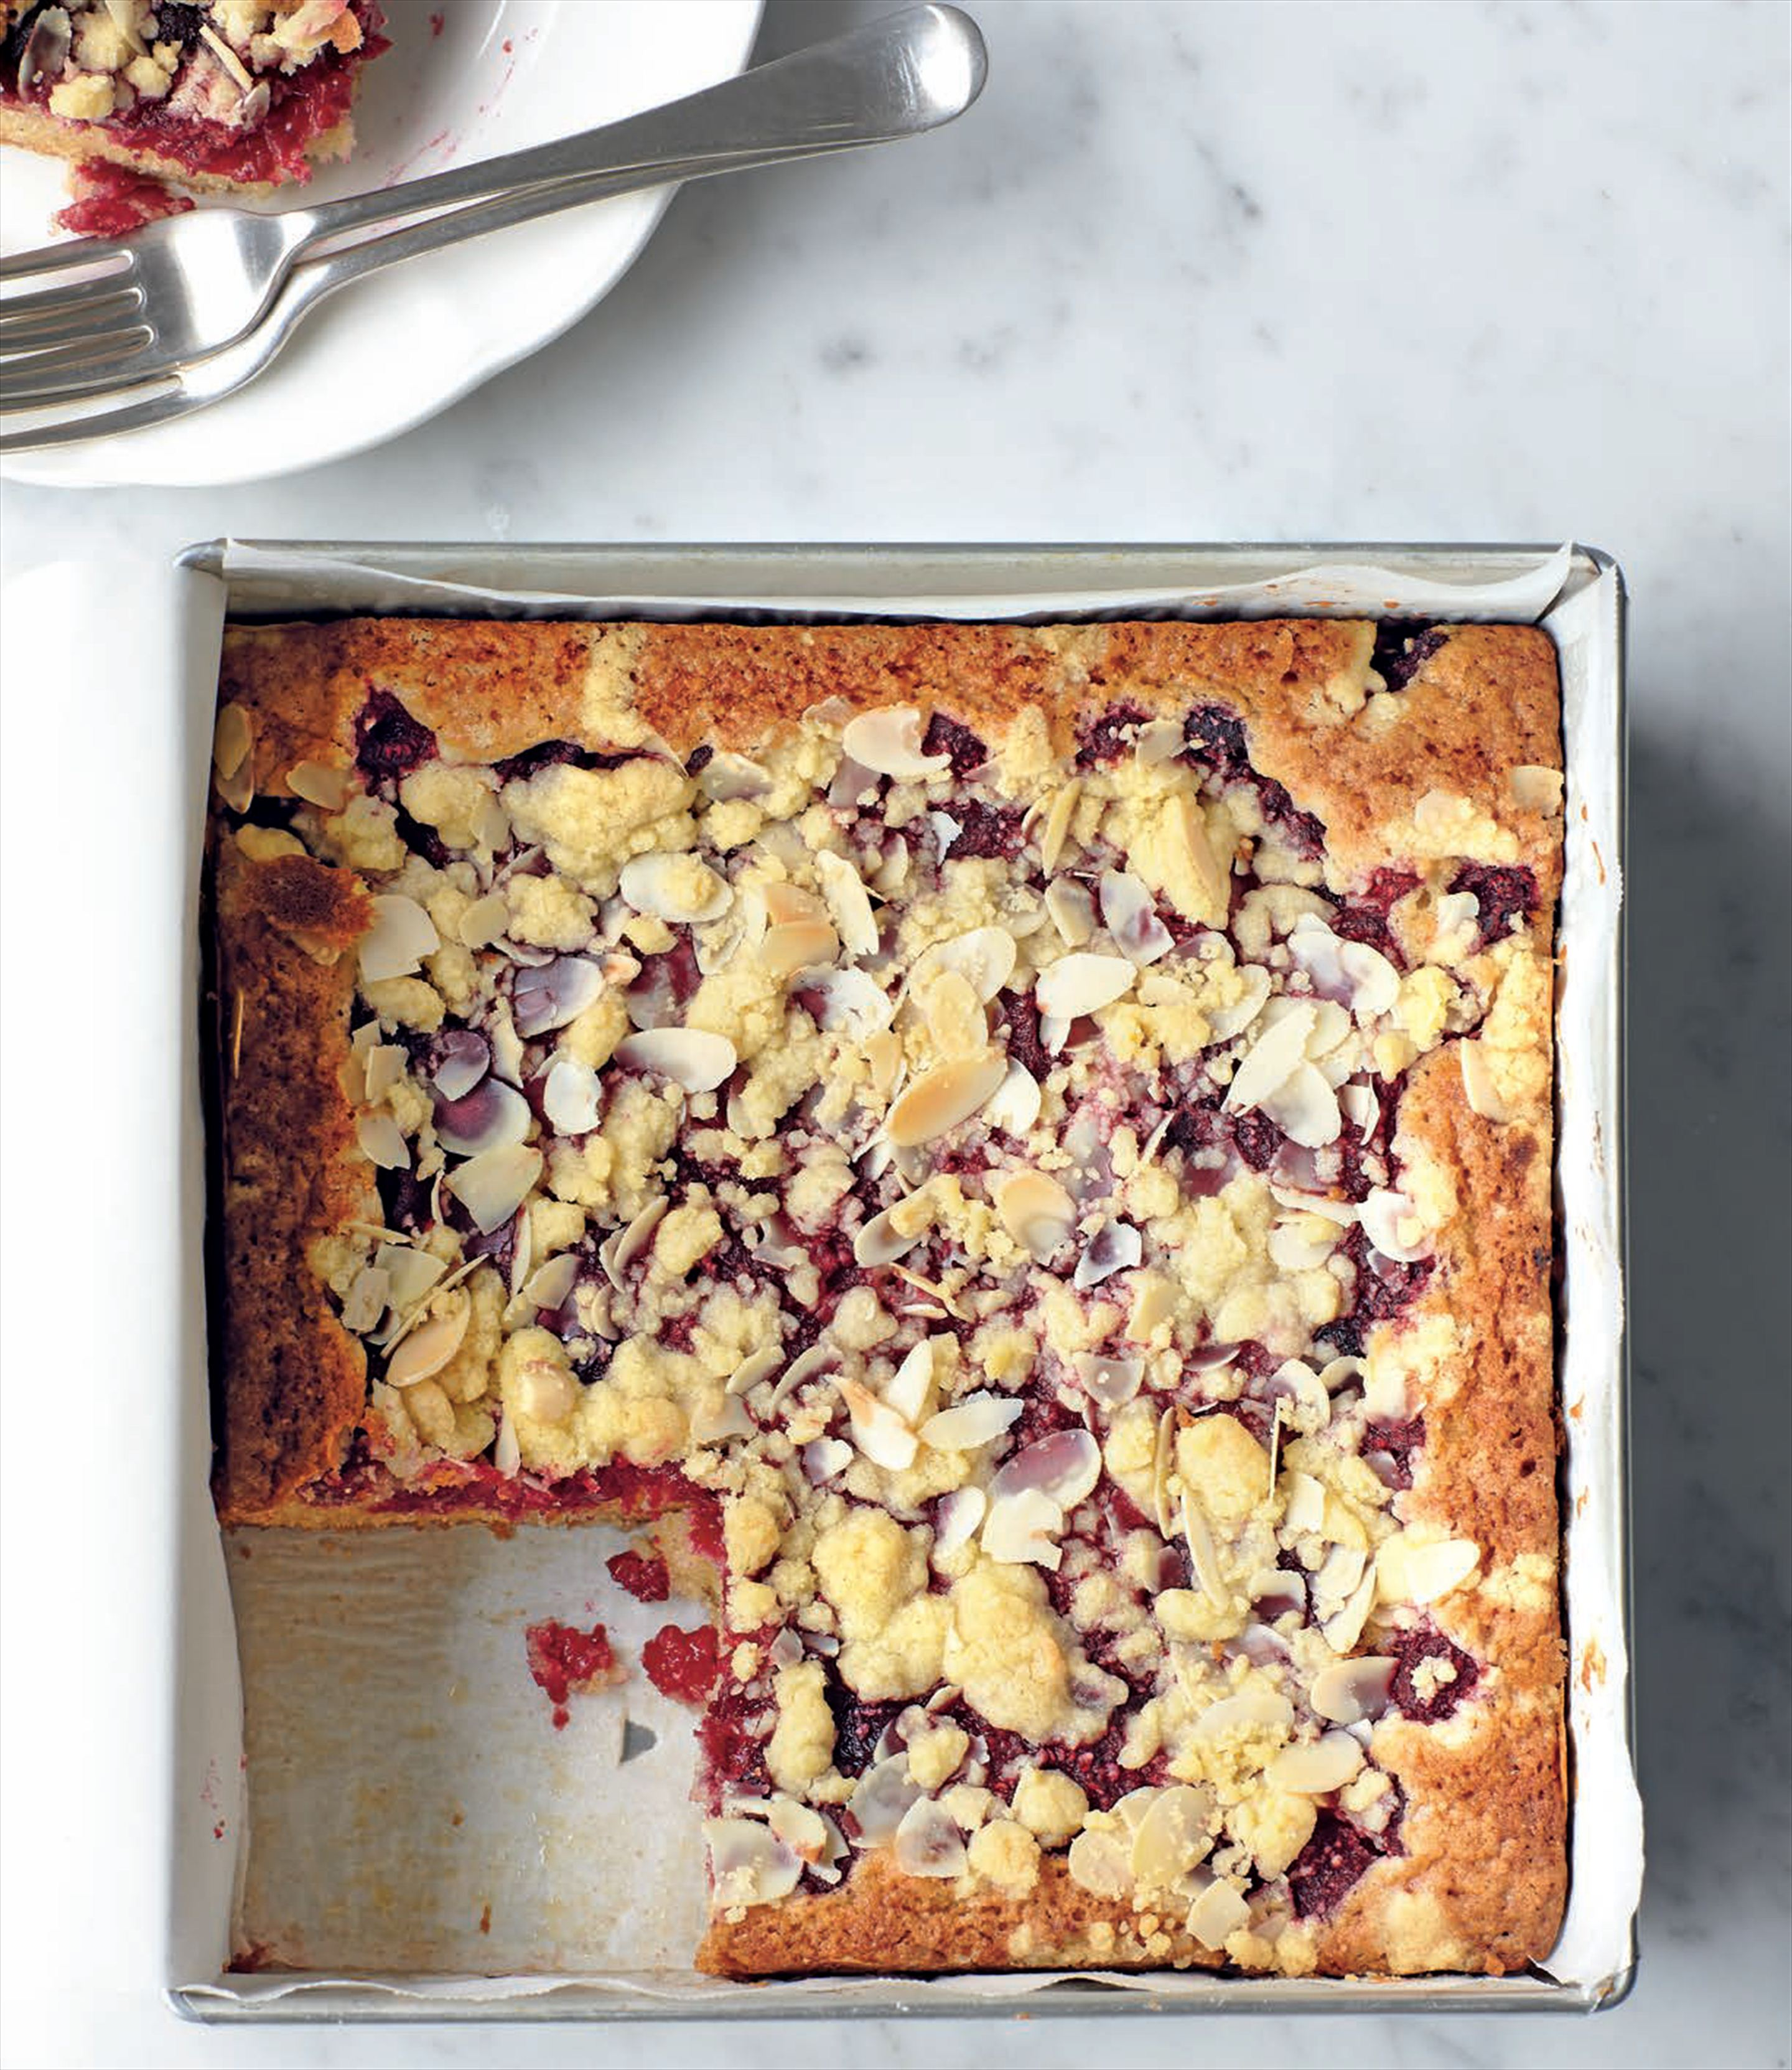 Raspberry & almond slab cake